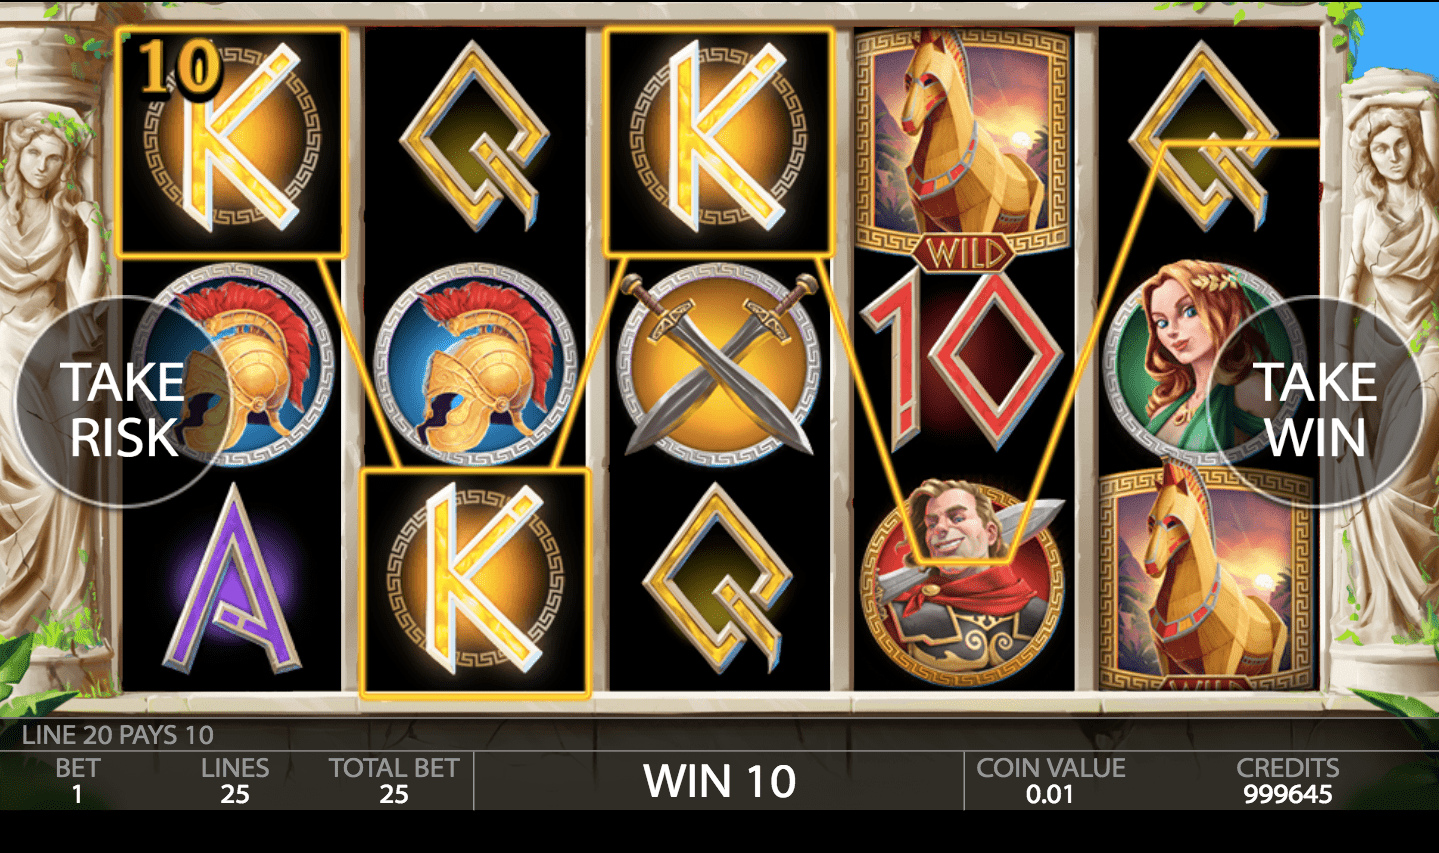 Ancient Troy graphics look accordingly to the theme, with a user-friendly interface.